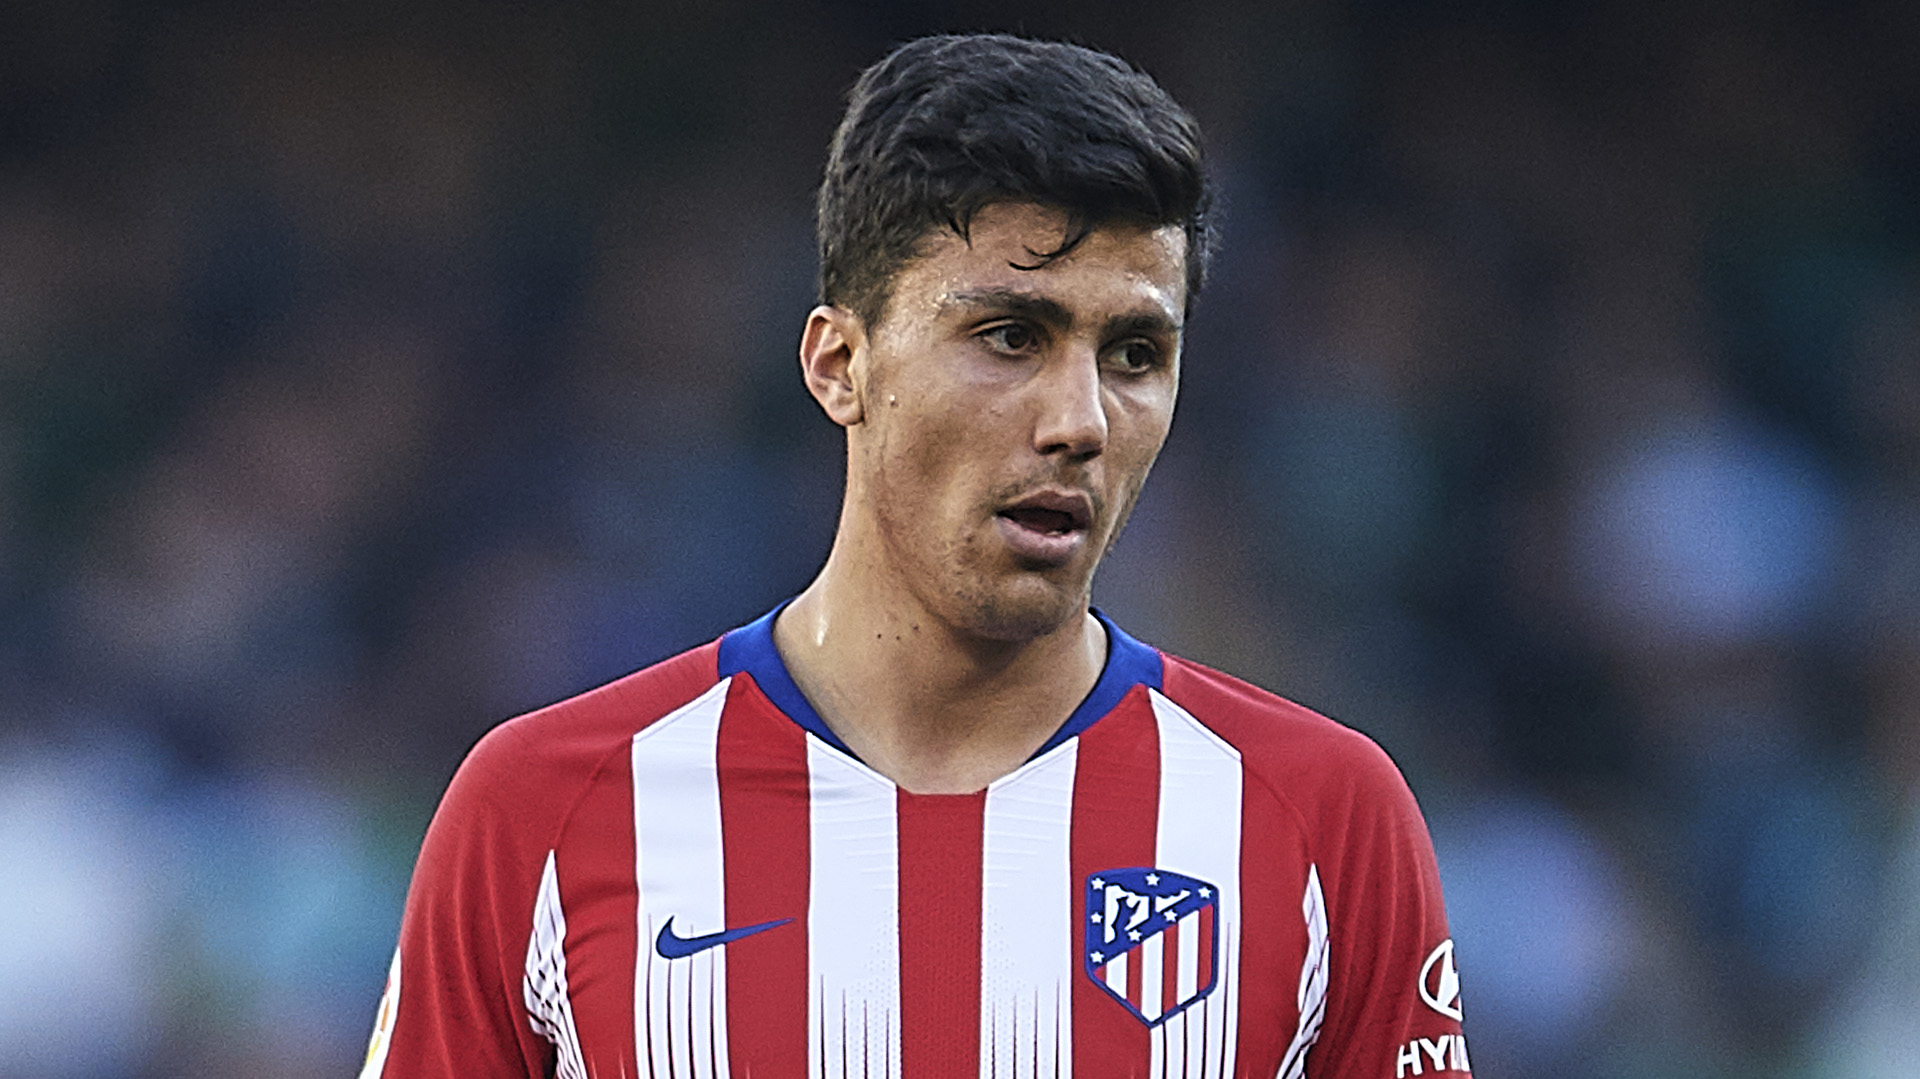 Manchester City seal club-record $112 million Rodri signing